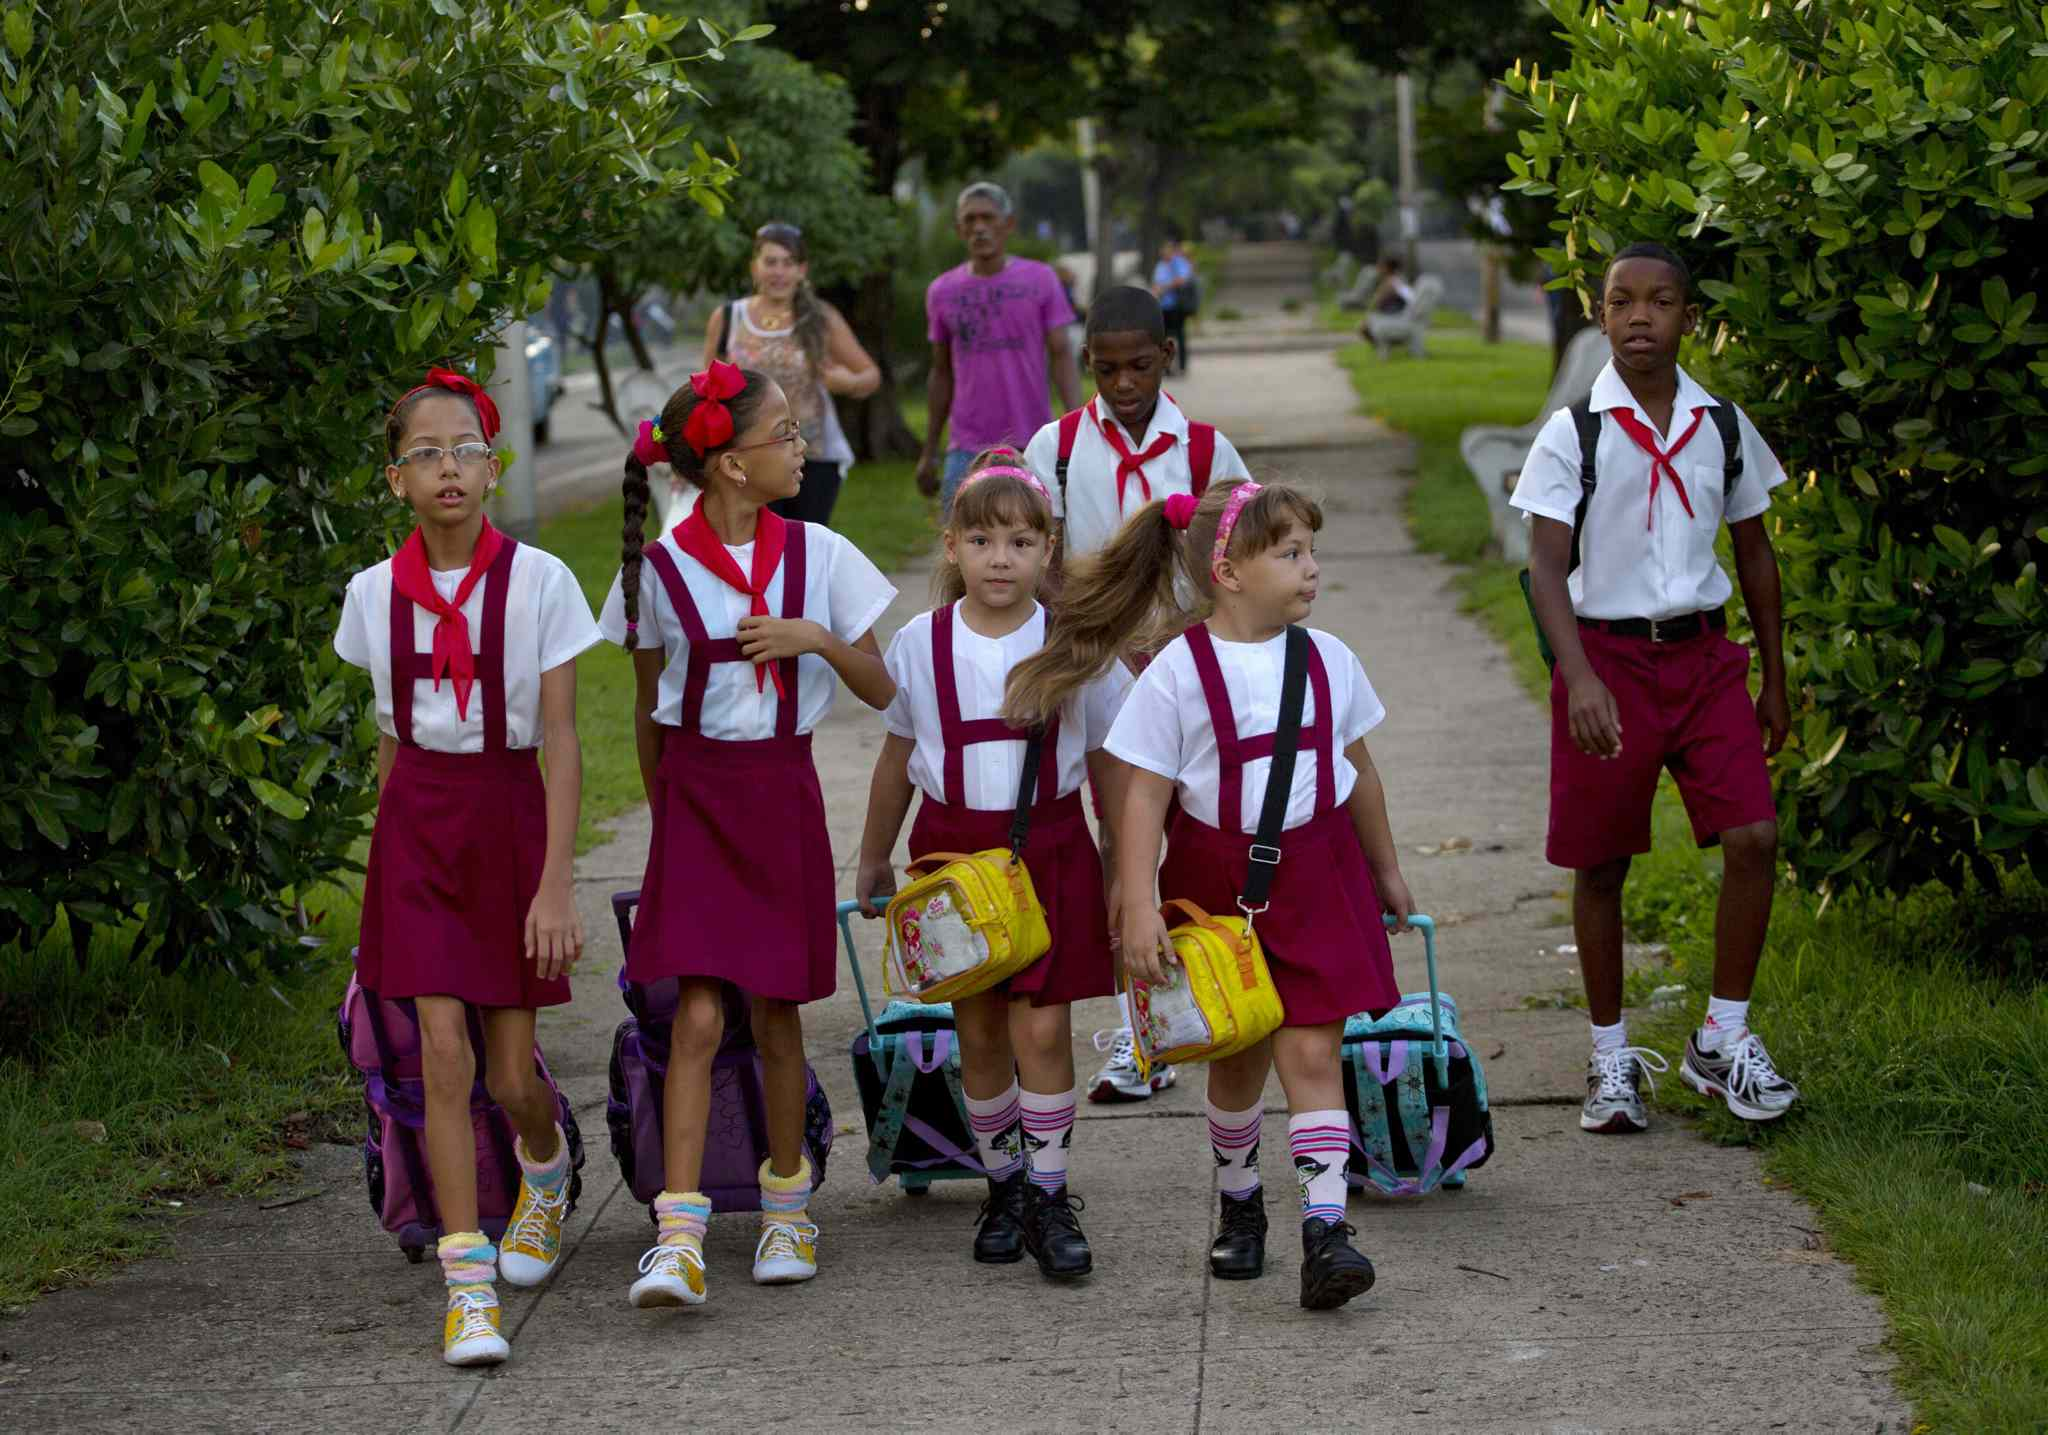 From left to right: nine-year-old twins Camila and Carla Rodriguez, six-year-old twins Asley and Aslen Velazquez, and 11-year-old twin brothers Arian and Adrian Cueto walk together to school in Havana, Cuba.